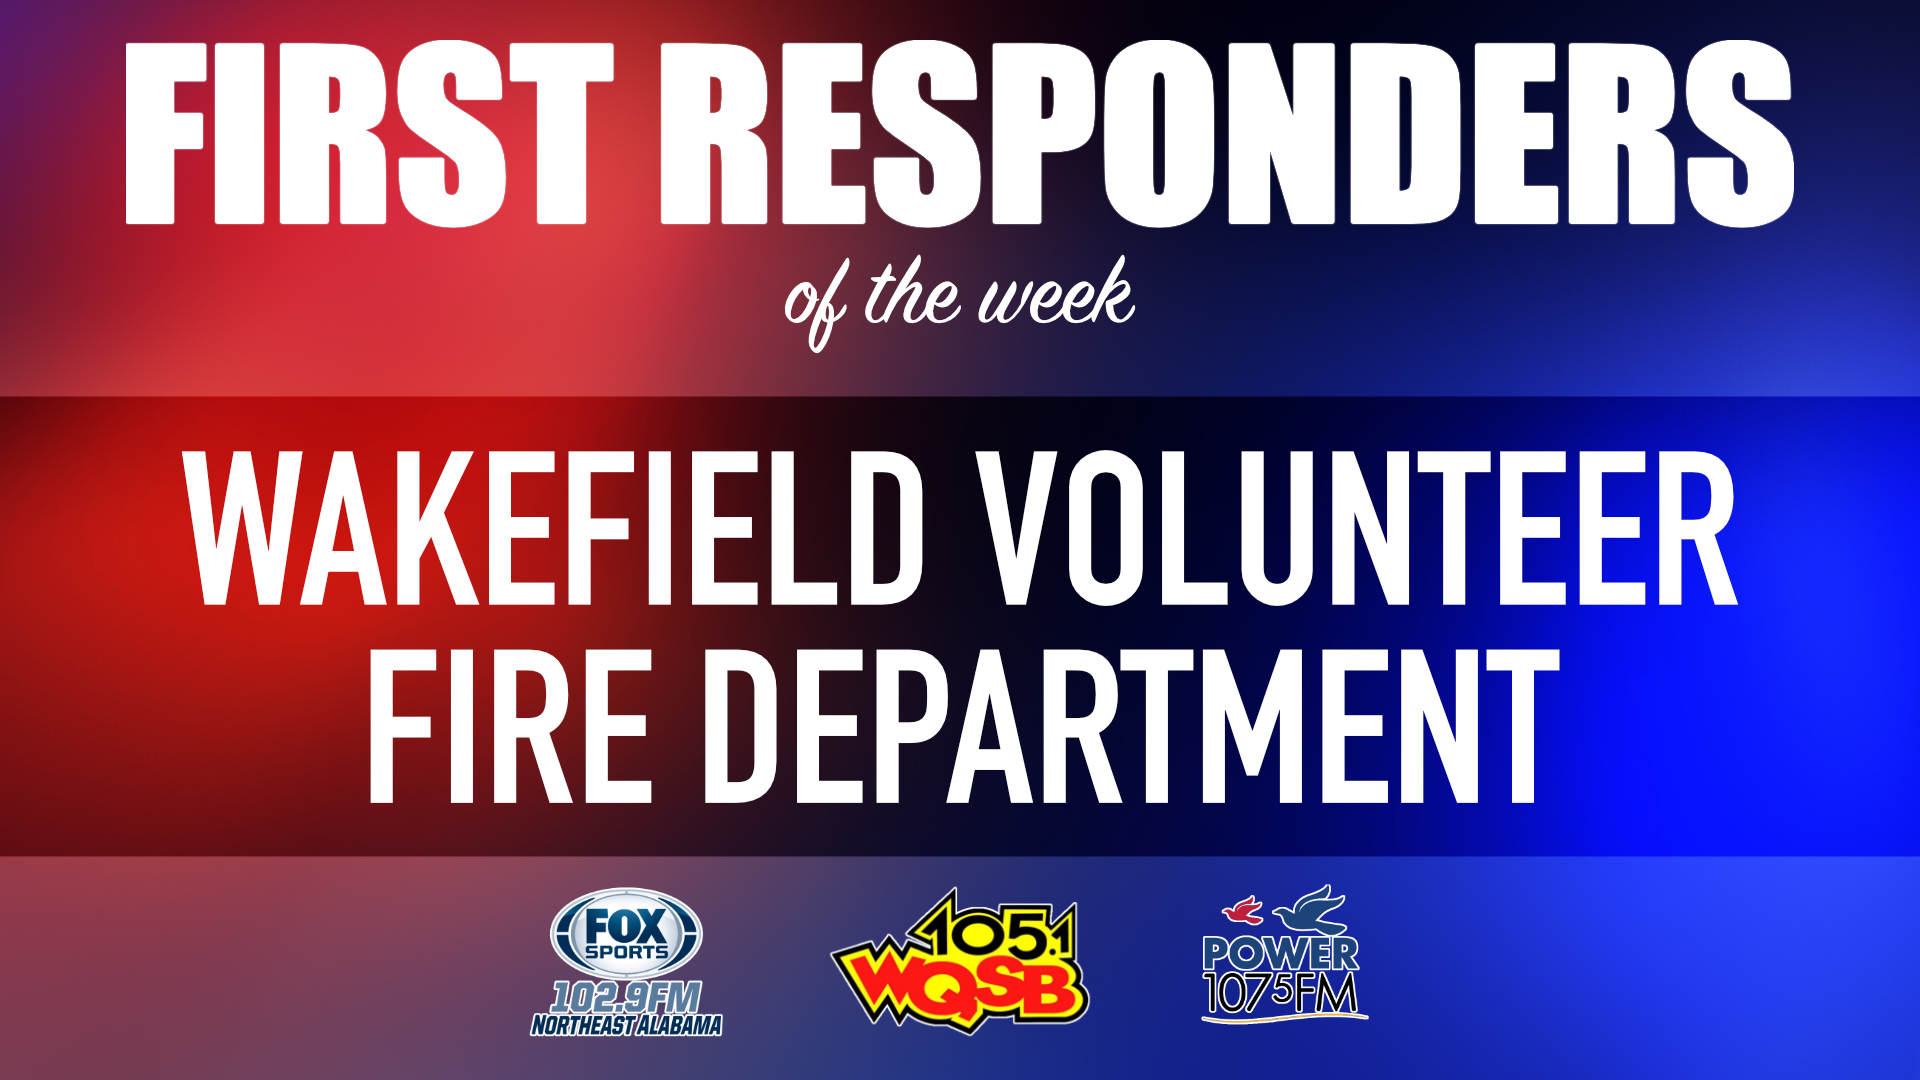 WQSB First Responders of the Week 2021 March 8, 2021